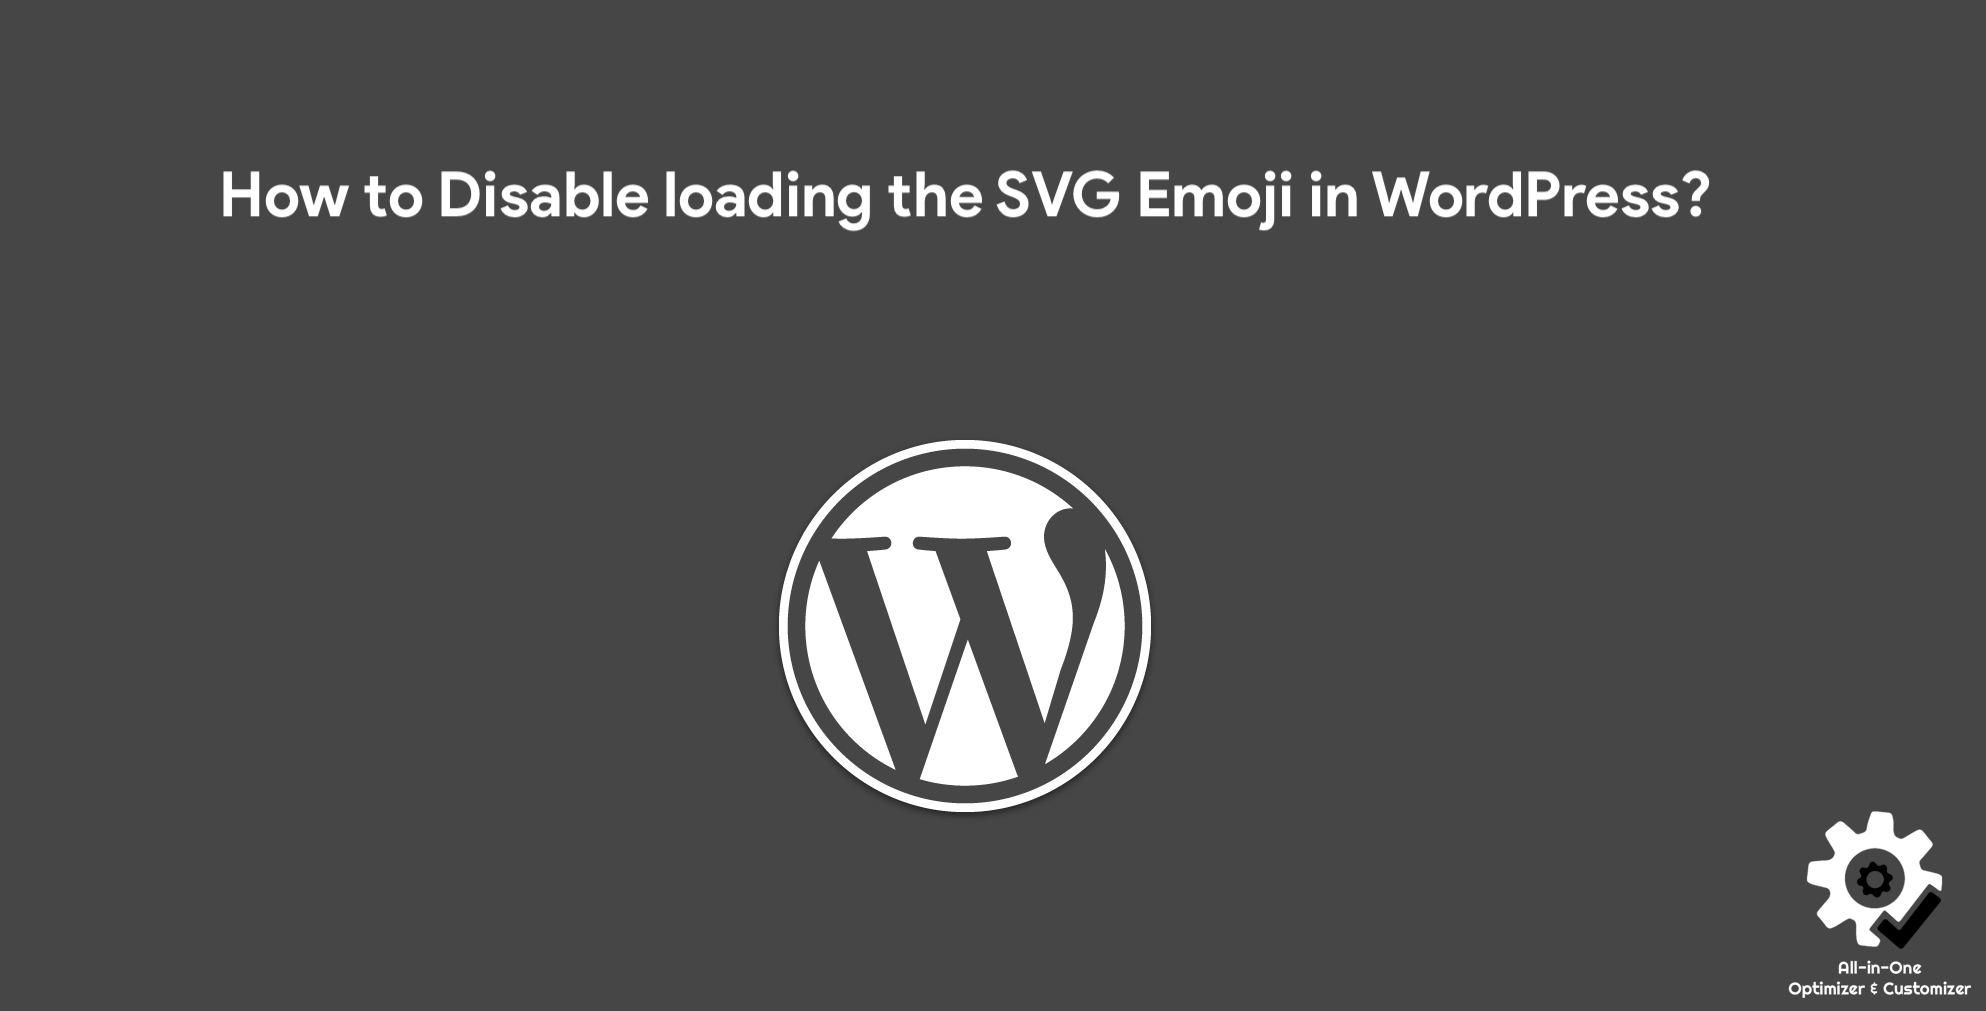 How to Disable loading the SVG Emoji in WordPress?